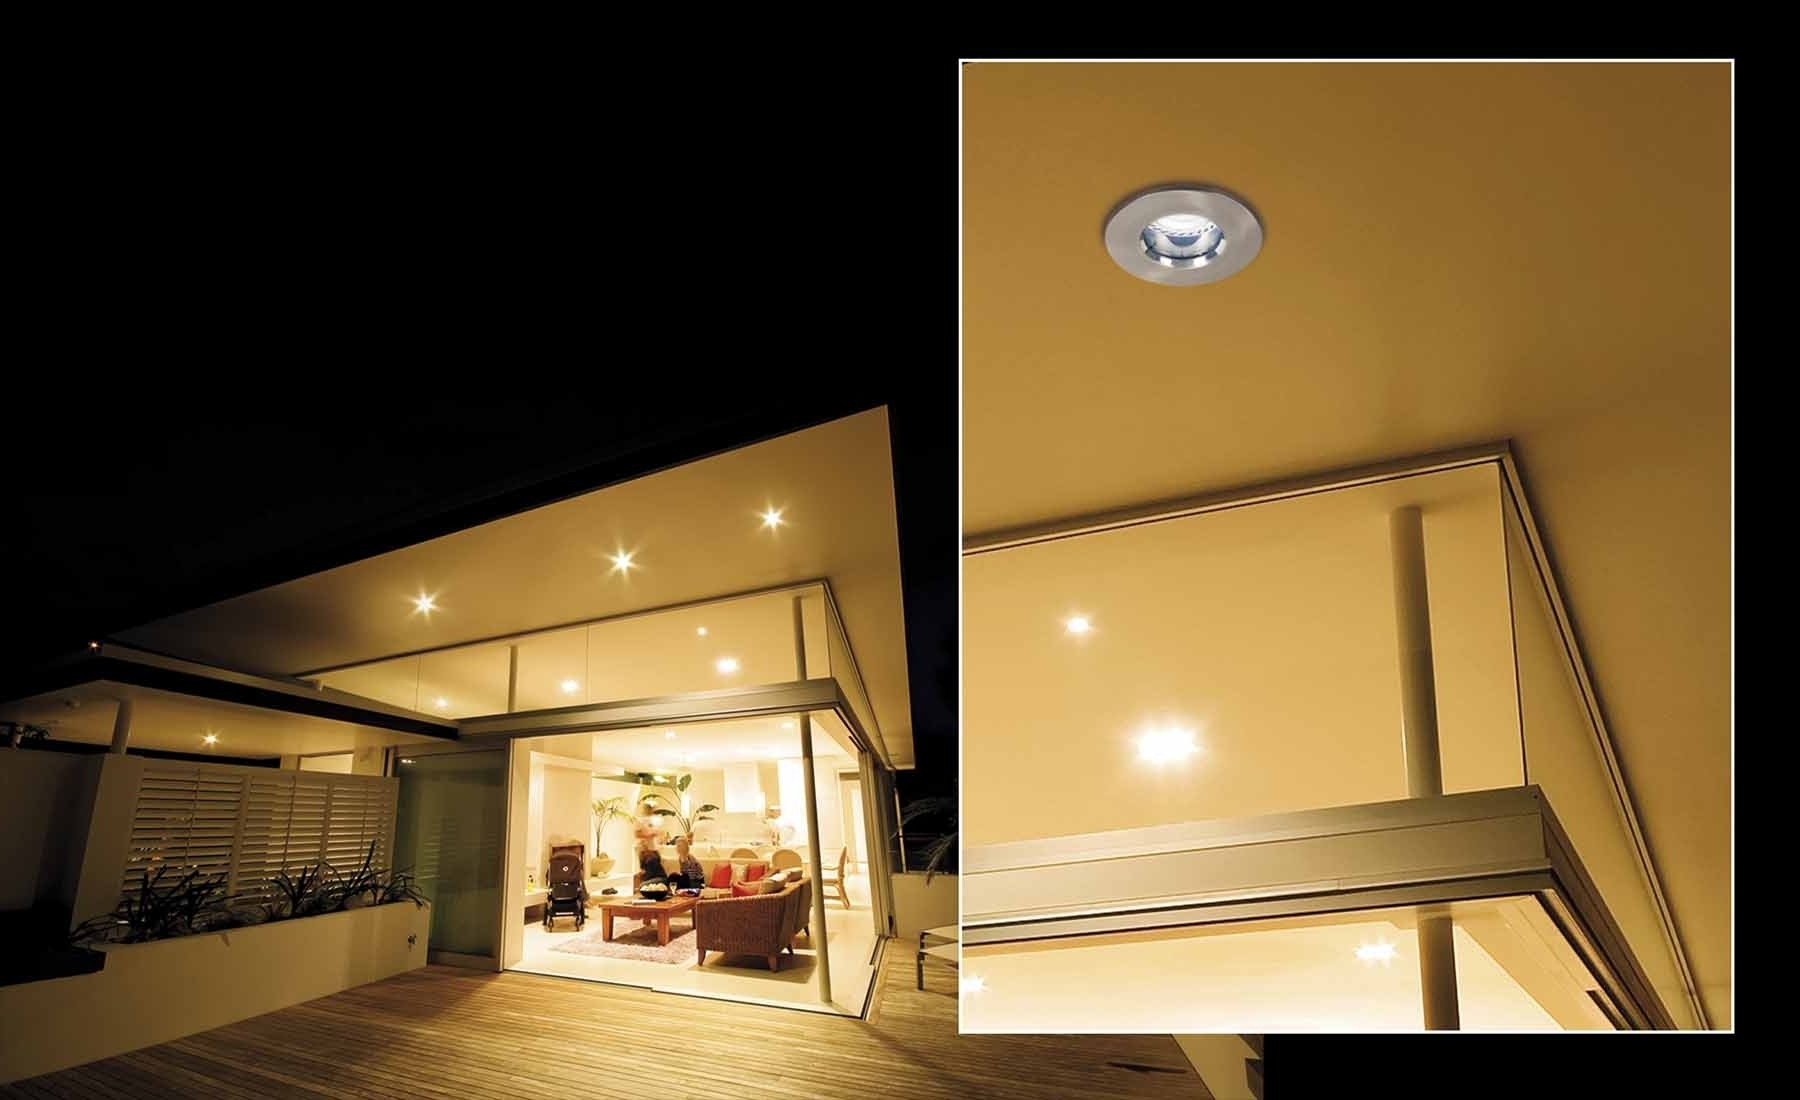 Outdoor Ceiling Lights For Patio For 2018 Outdoor Ceiling Lights For Patio • Outdoor Lighting (View 11 of 20)